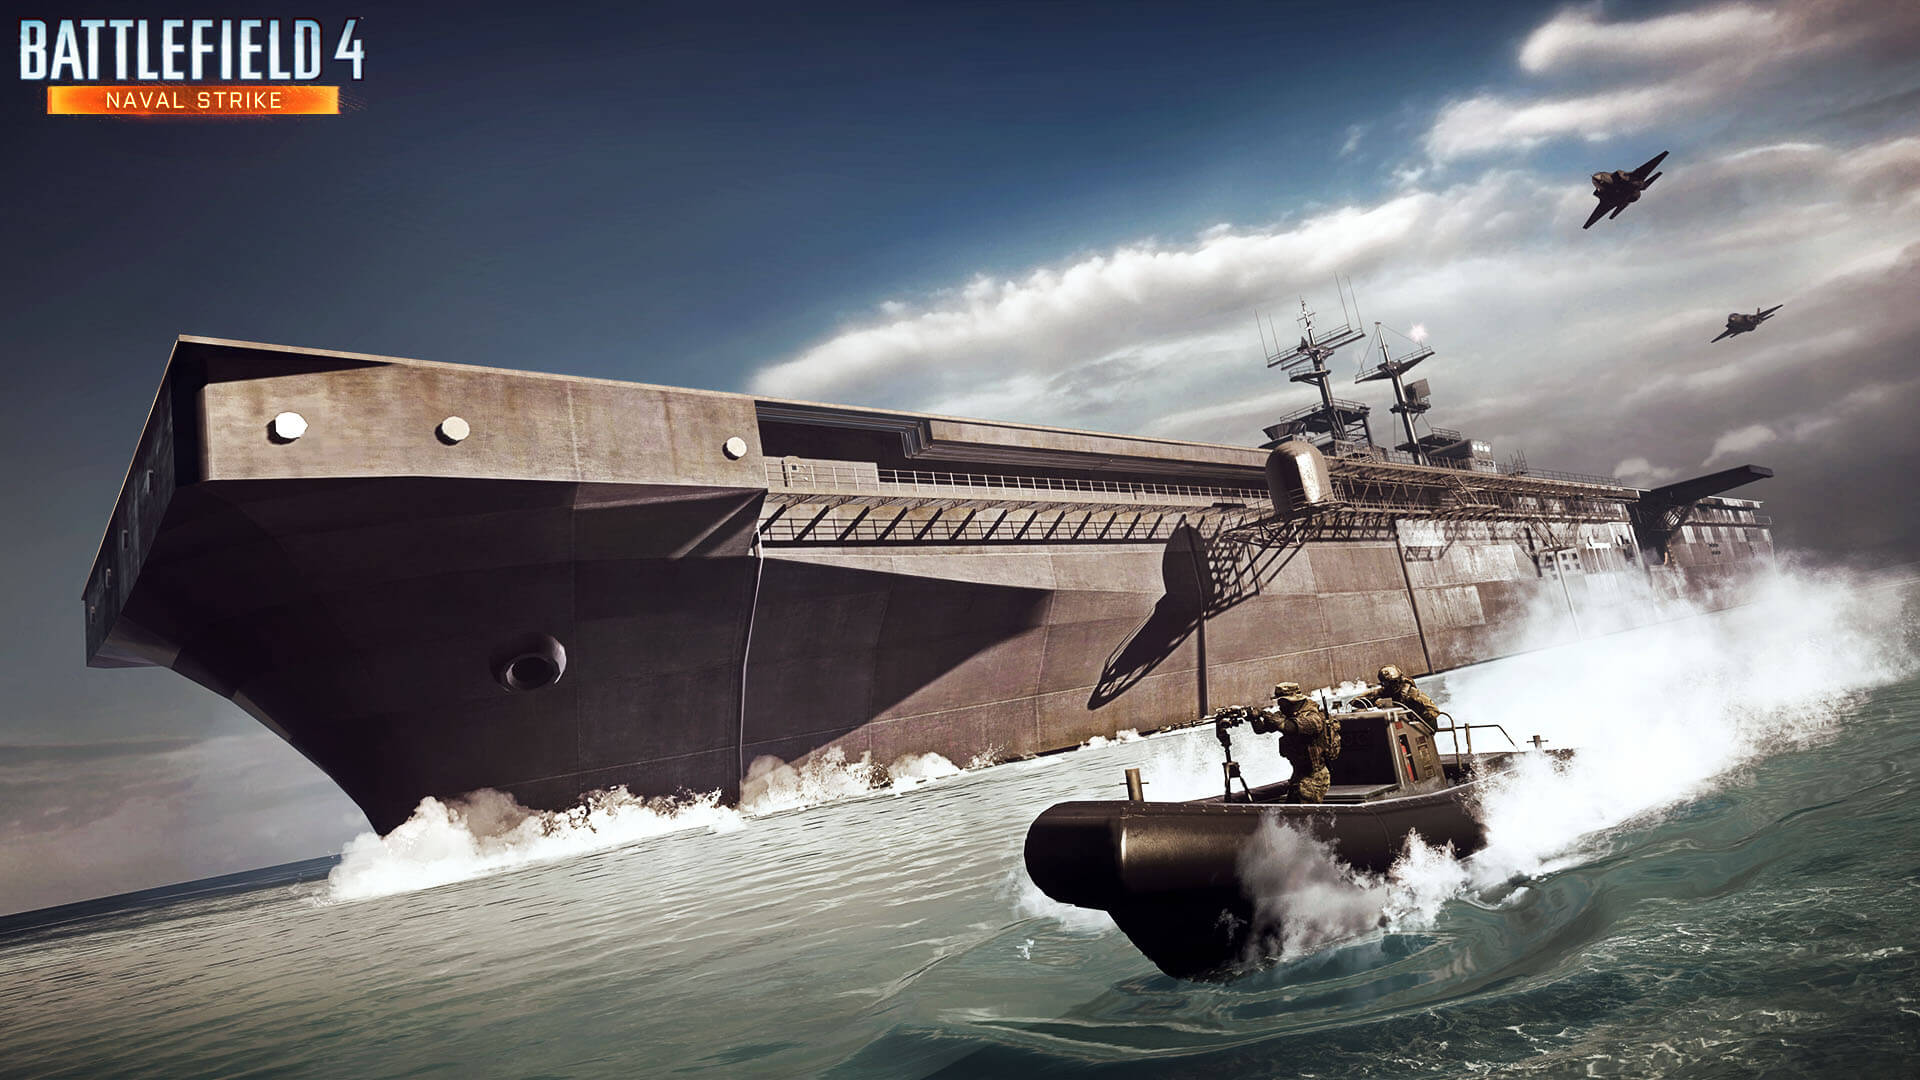 'Battlefield 4' Gets More DLC As Netcode Issues Take 'Top Priority' – Huh?